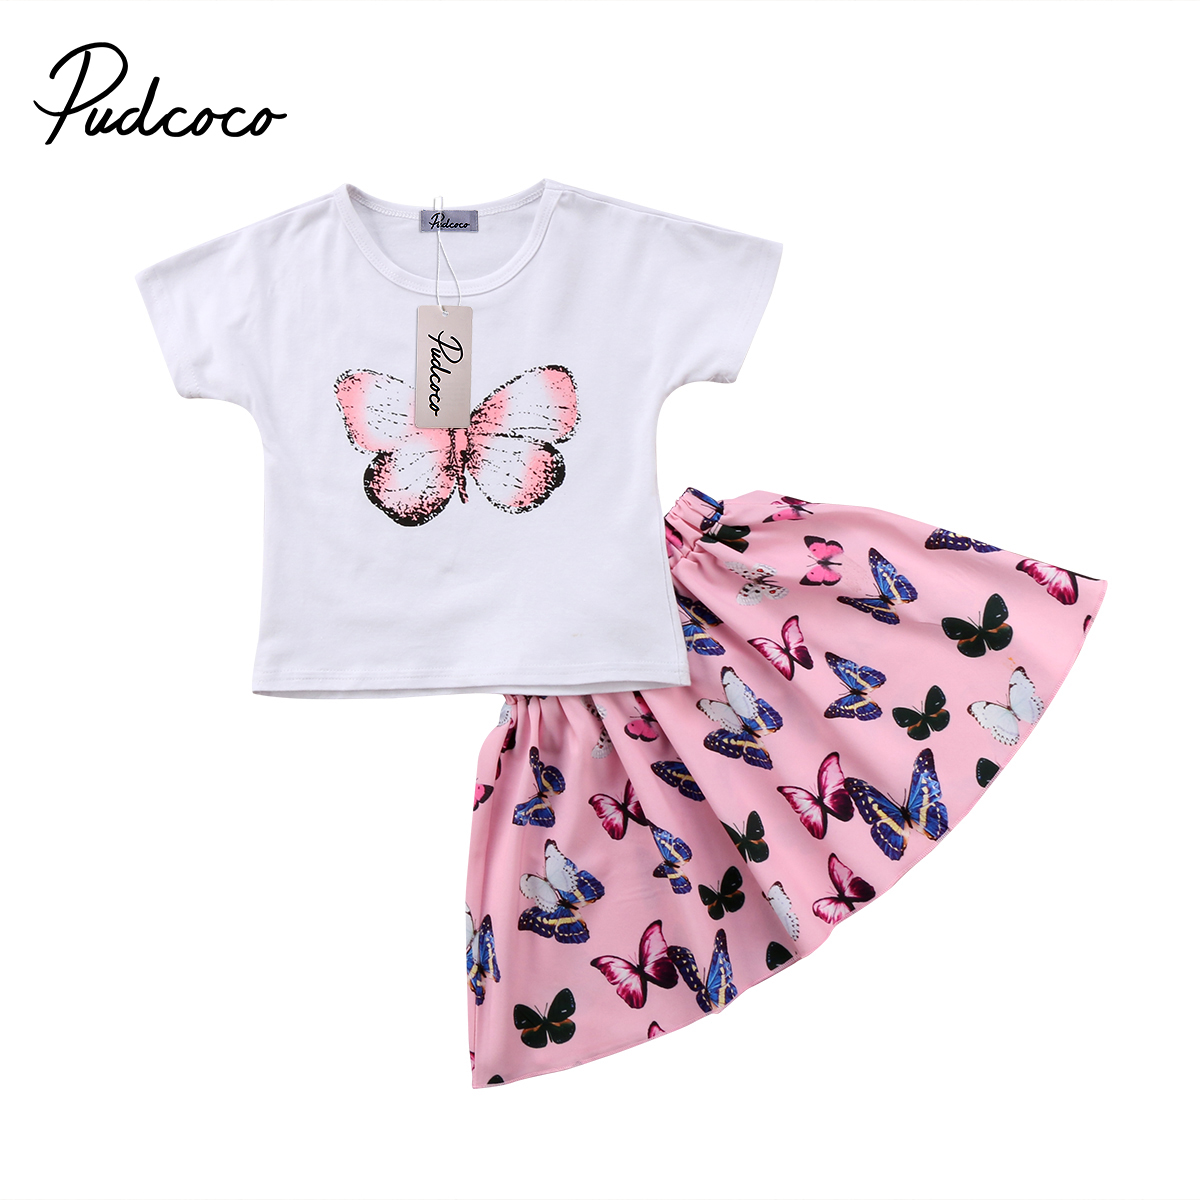 Butterfly Baby Kids Girls Clothing Sets Toddler Kids T-shirt Tops+Skirts 2Pcs Outfits Clothes princess toddler kids baby girl clothes sets sequins tops vest tutu skirts cute ball headband 3pcs outfits set girls clothing